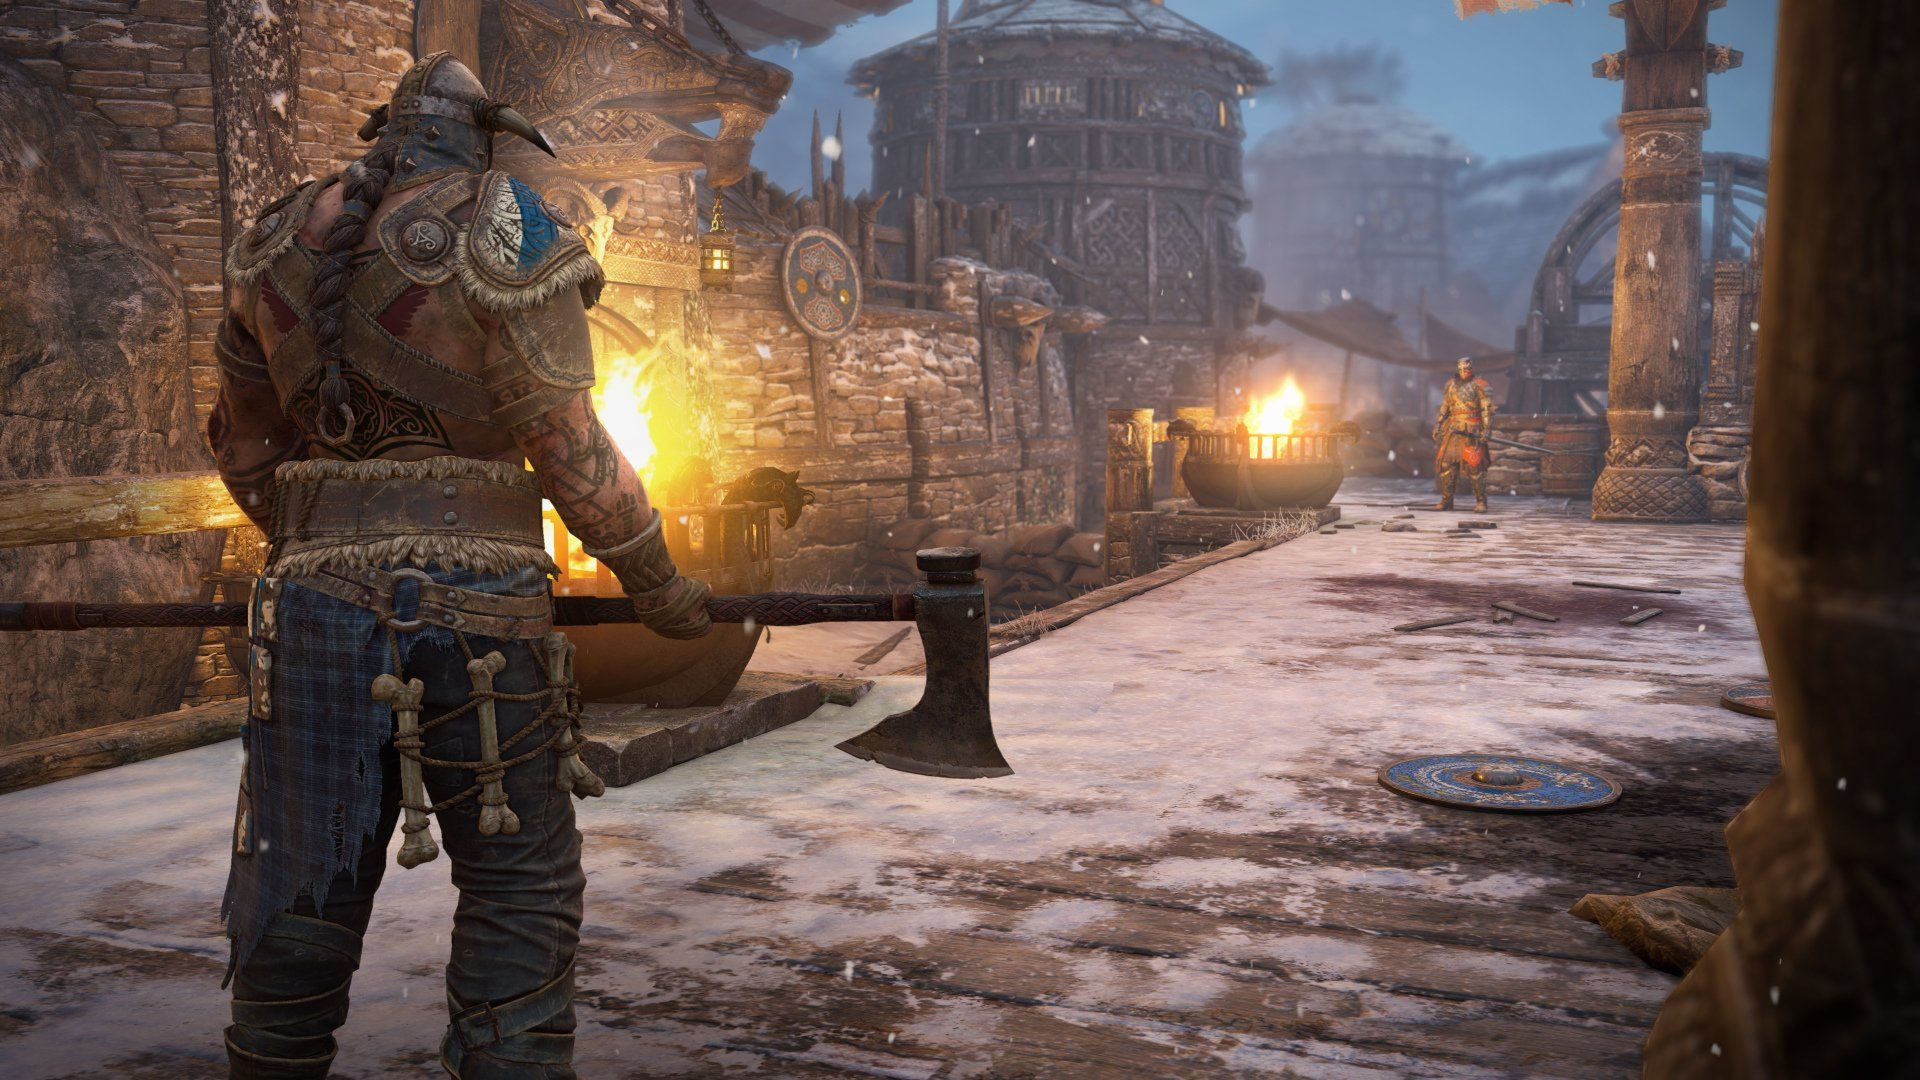 For Honor #ForHonor #Ubisoft #PC #PS4 #XboxOne #Vikings